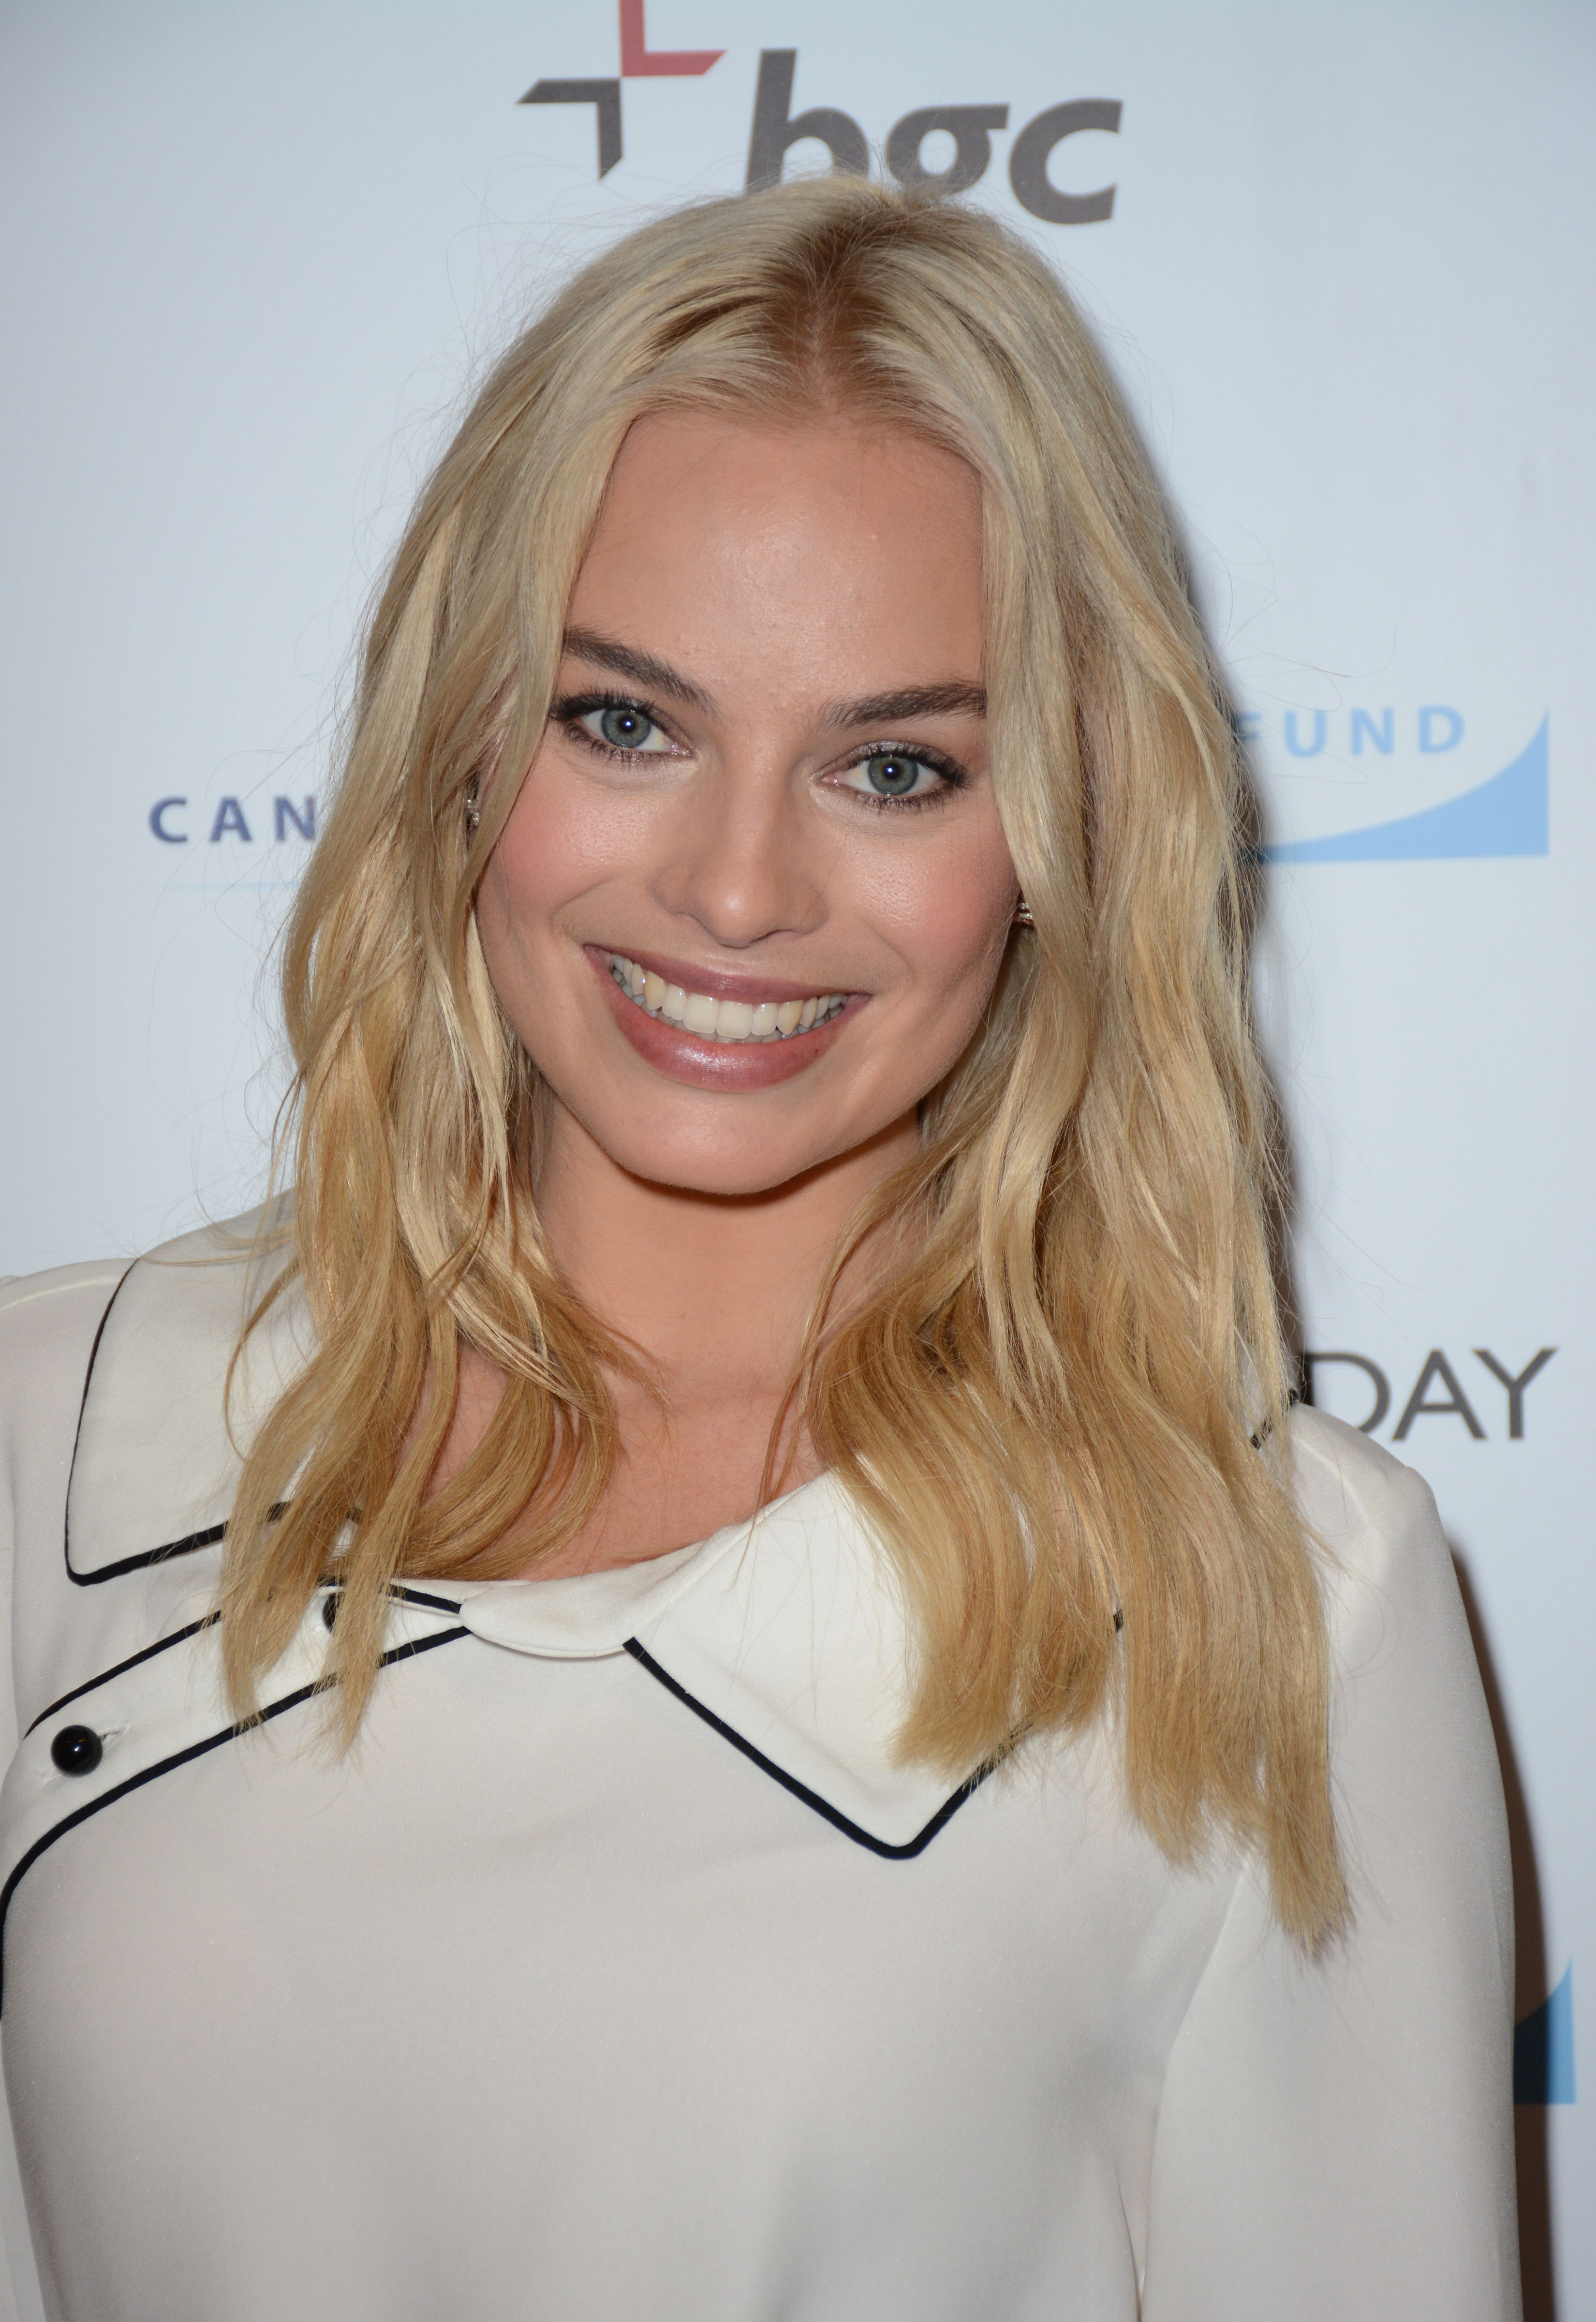 Margot Robbie Annual Charity Day Hosted By Cantor Fitzgerald And Bgc In Nyc